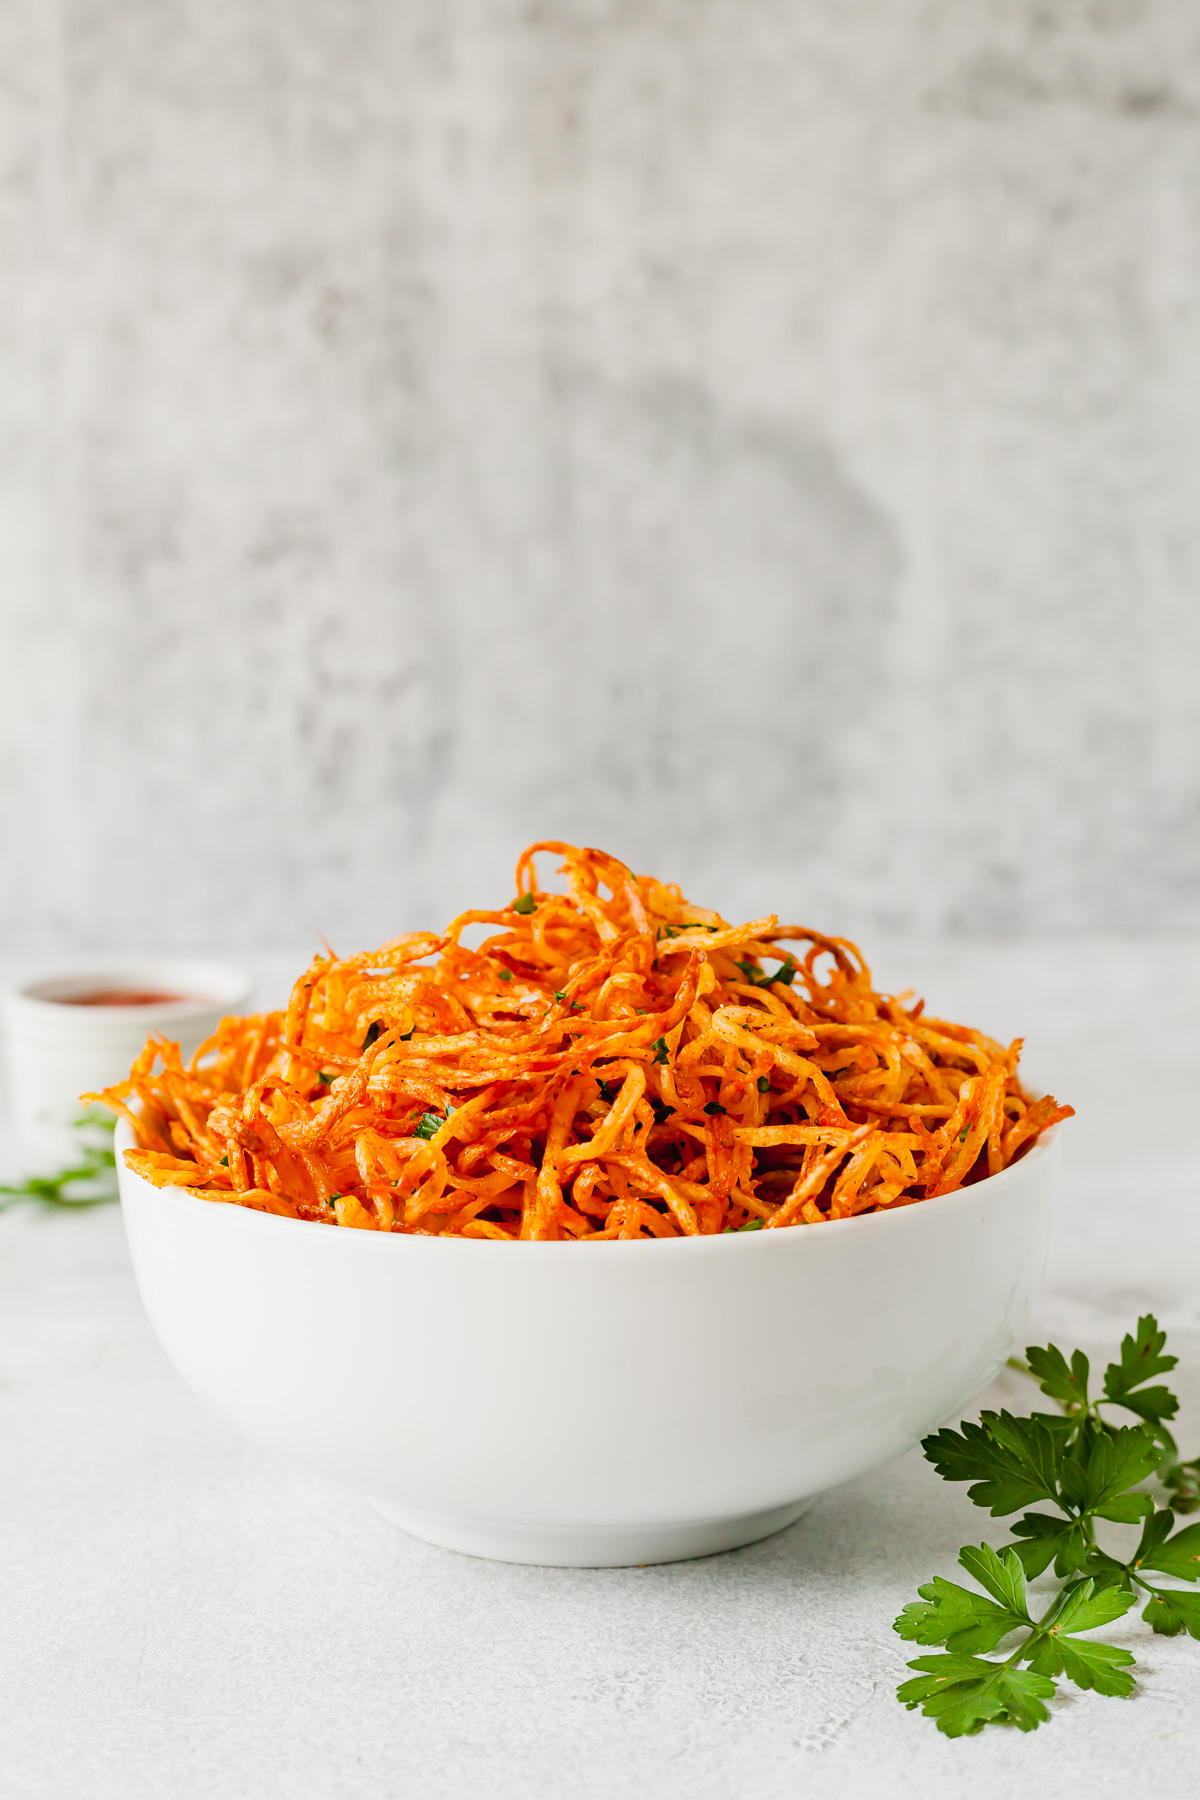 a white bowl of shoestring fries